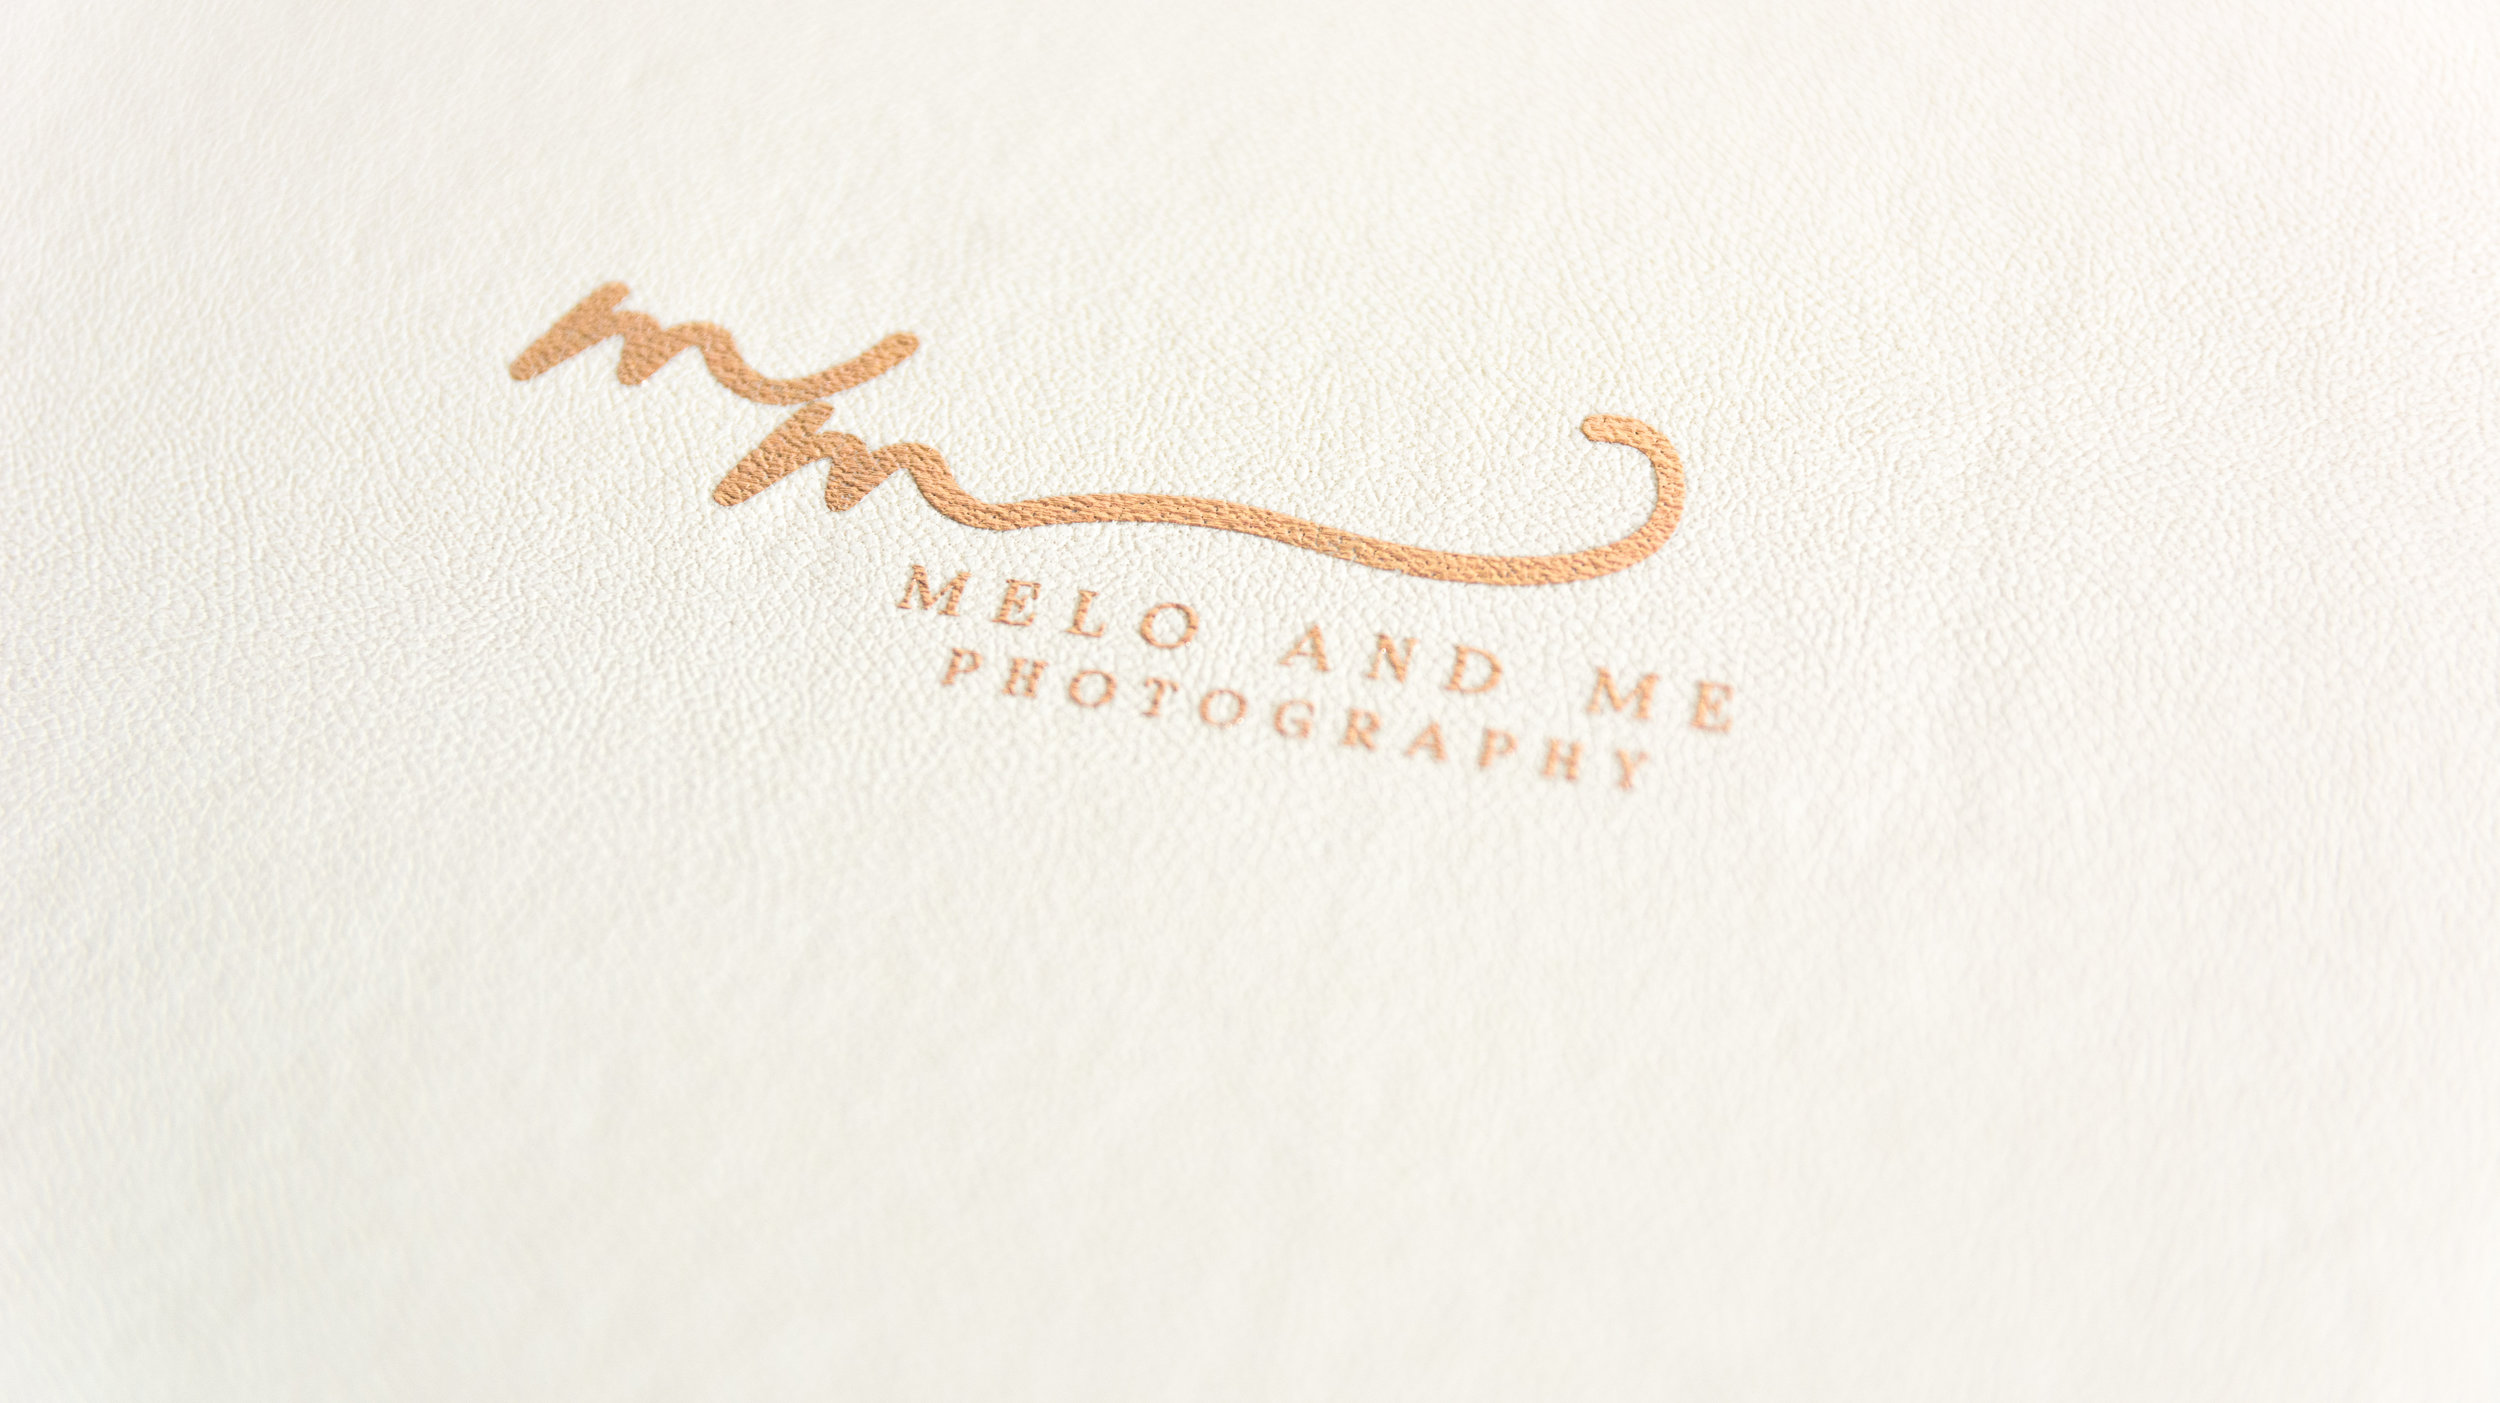 melo and me photography branding, senior family wedding photographer, box of matted prints, family pictures, family albums and heirlooms